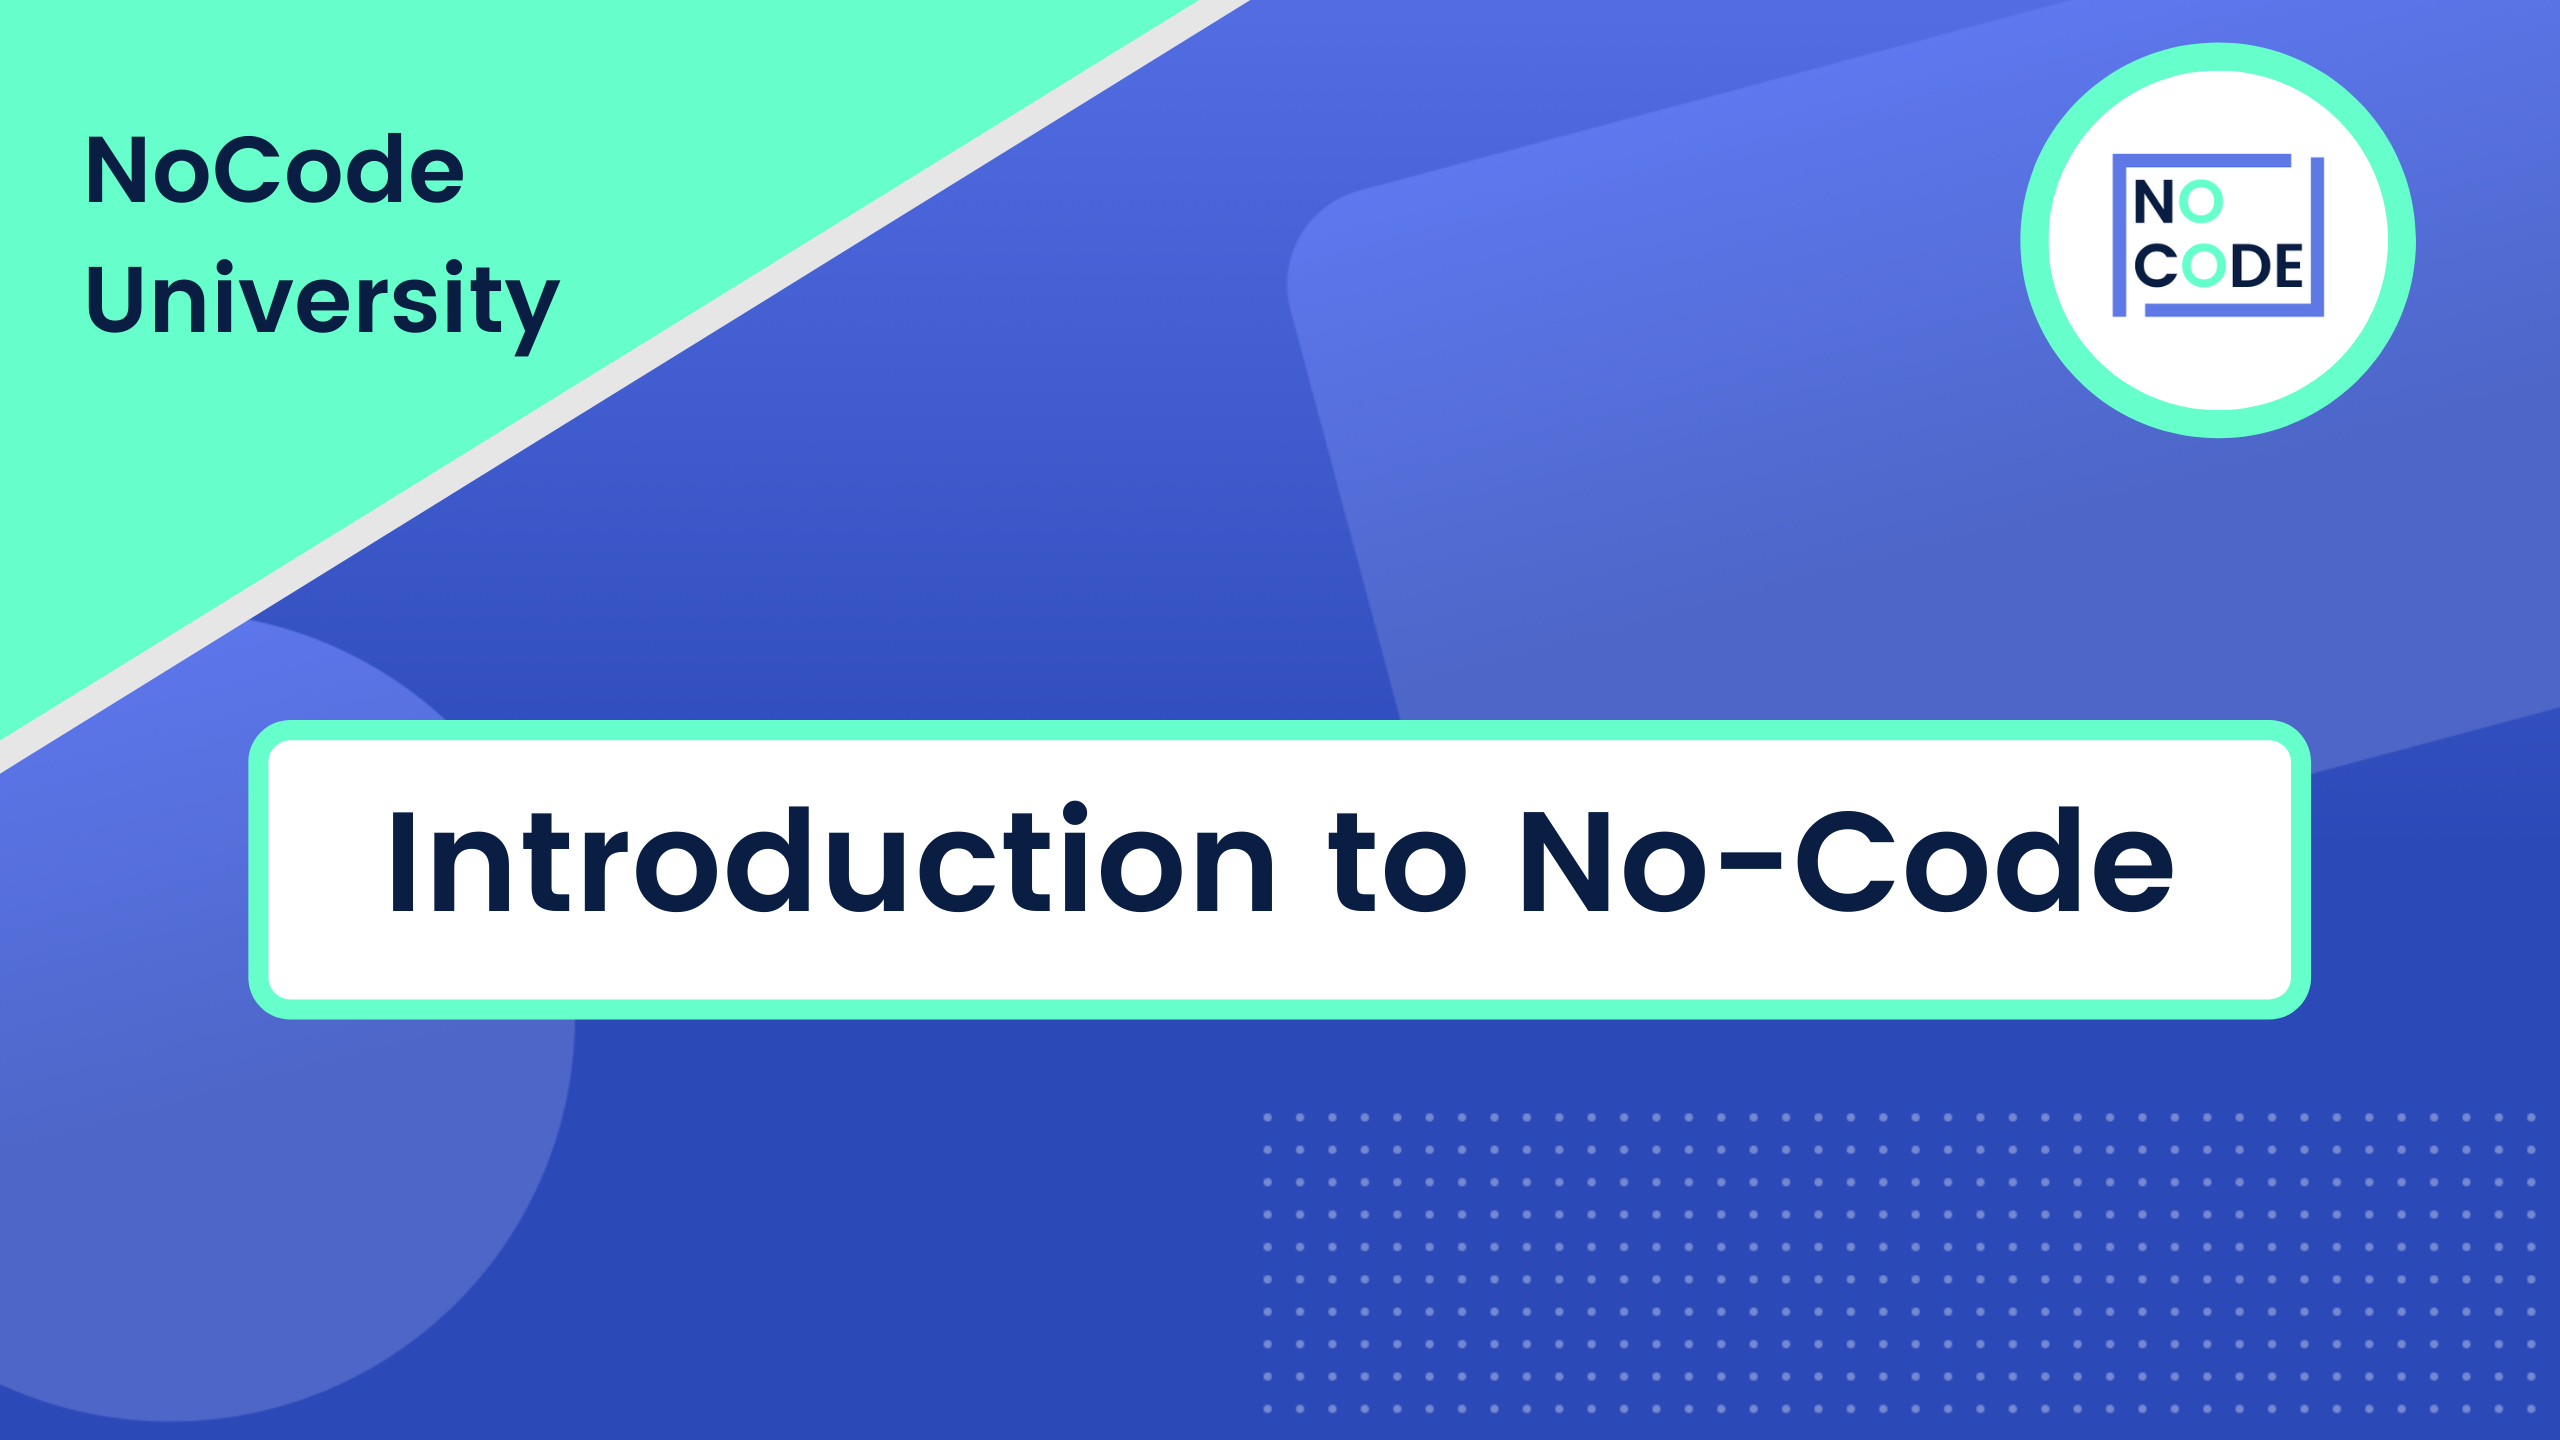 Introduction to No-Code